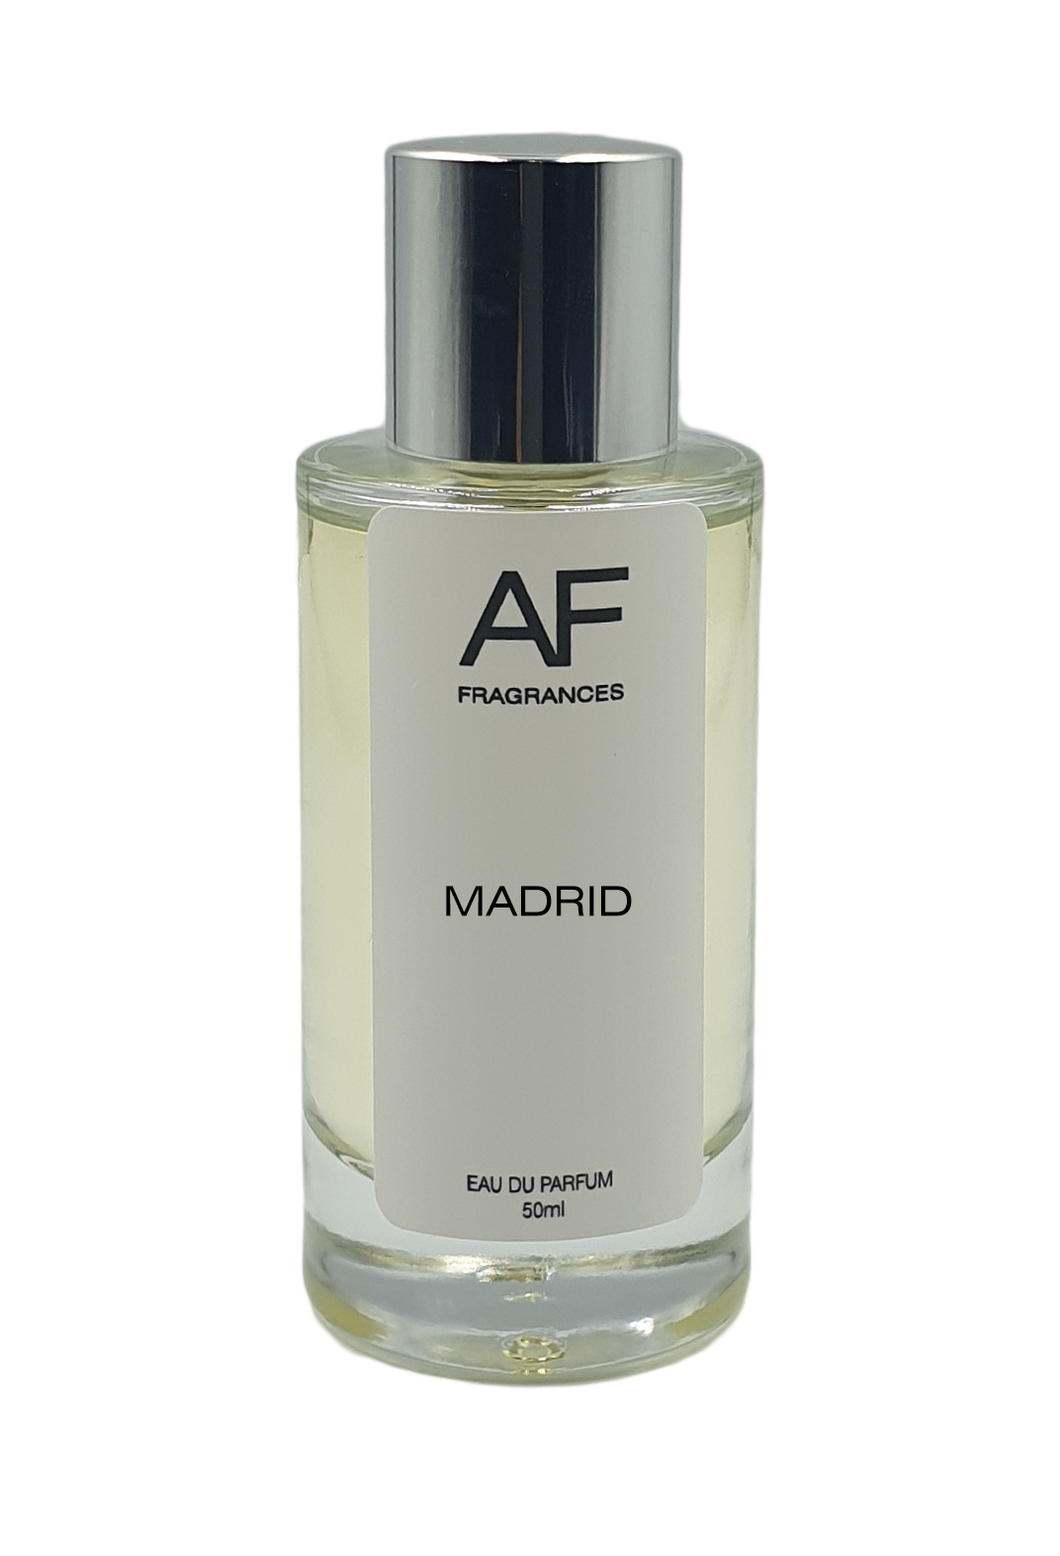 Madrid - AF Fragrances, Attar, Oud, Musk, Perfume, Premium quality